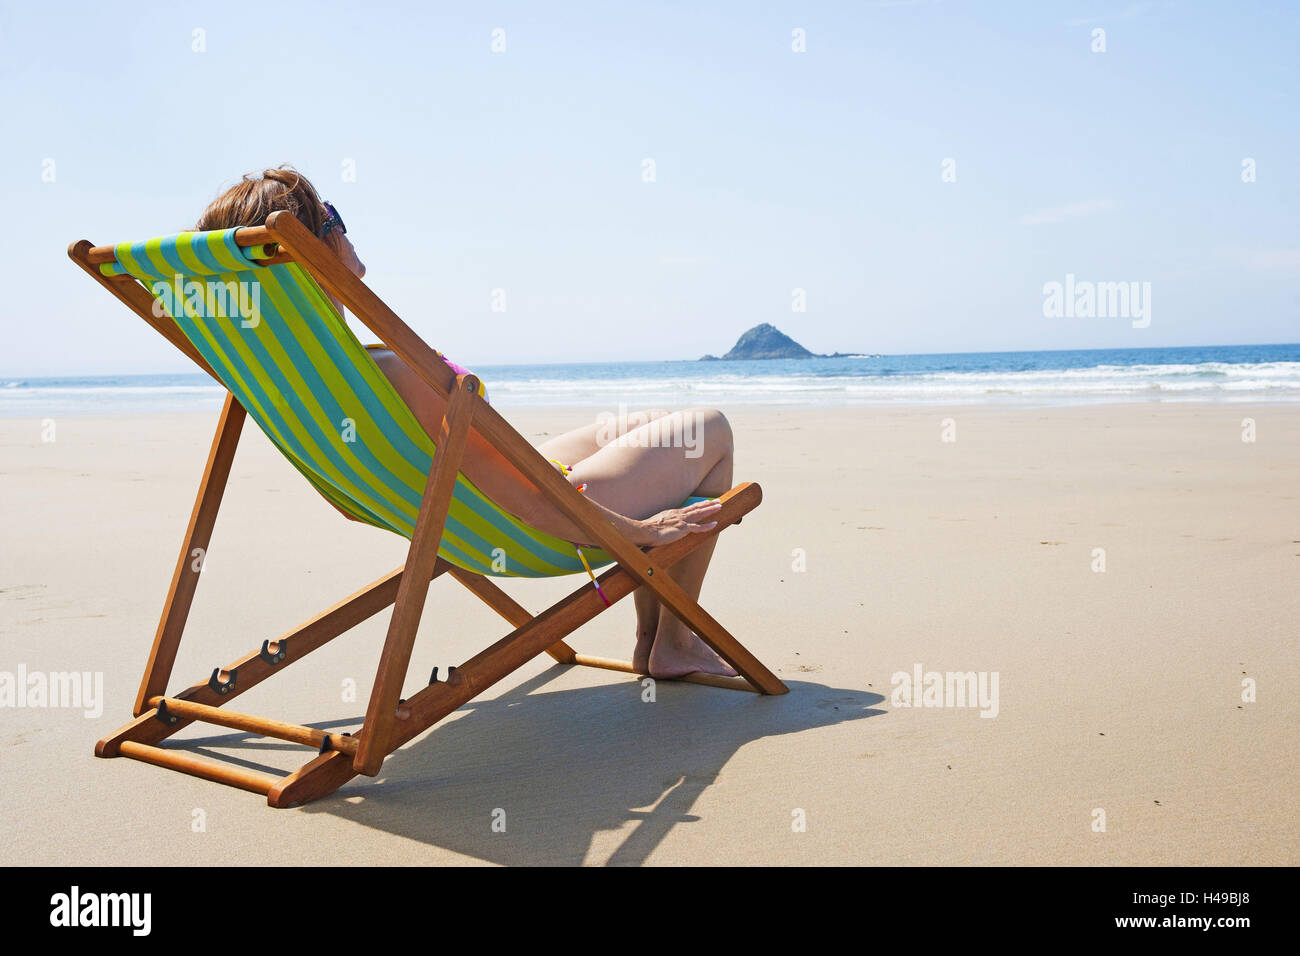 Woman, sunbed, beach, - Stock Image